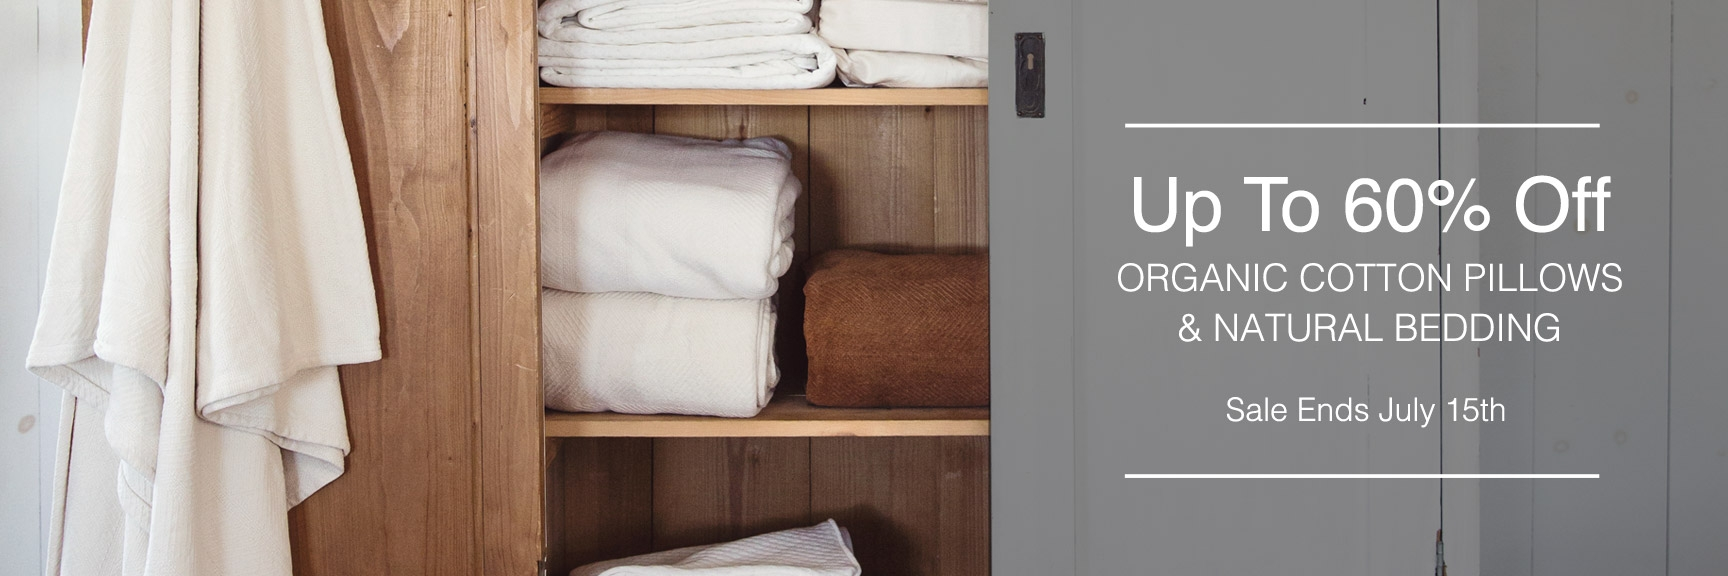 Natural & Chemical Free Bed Pillows